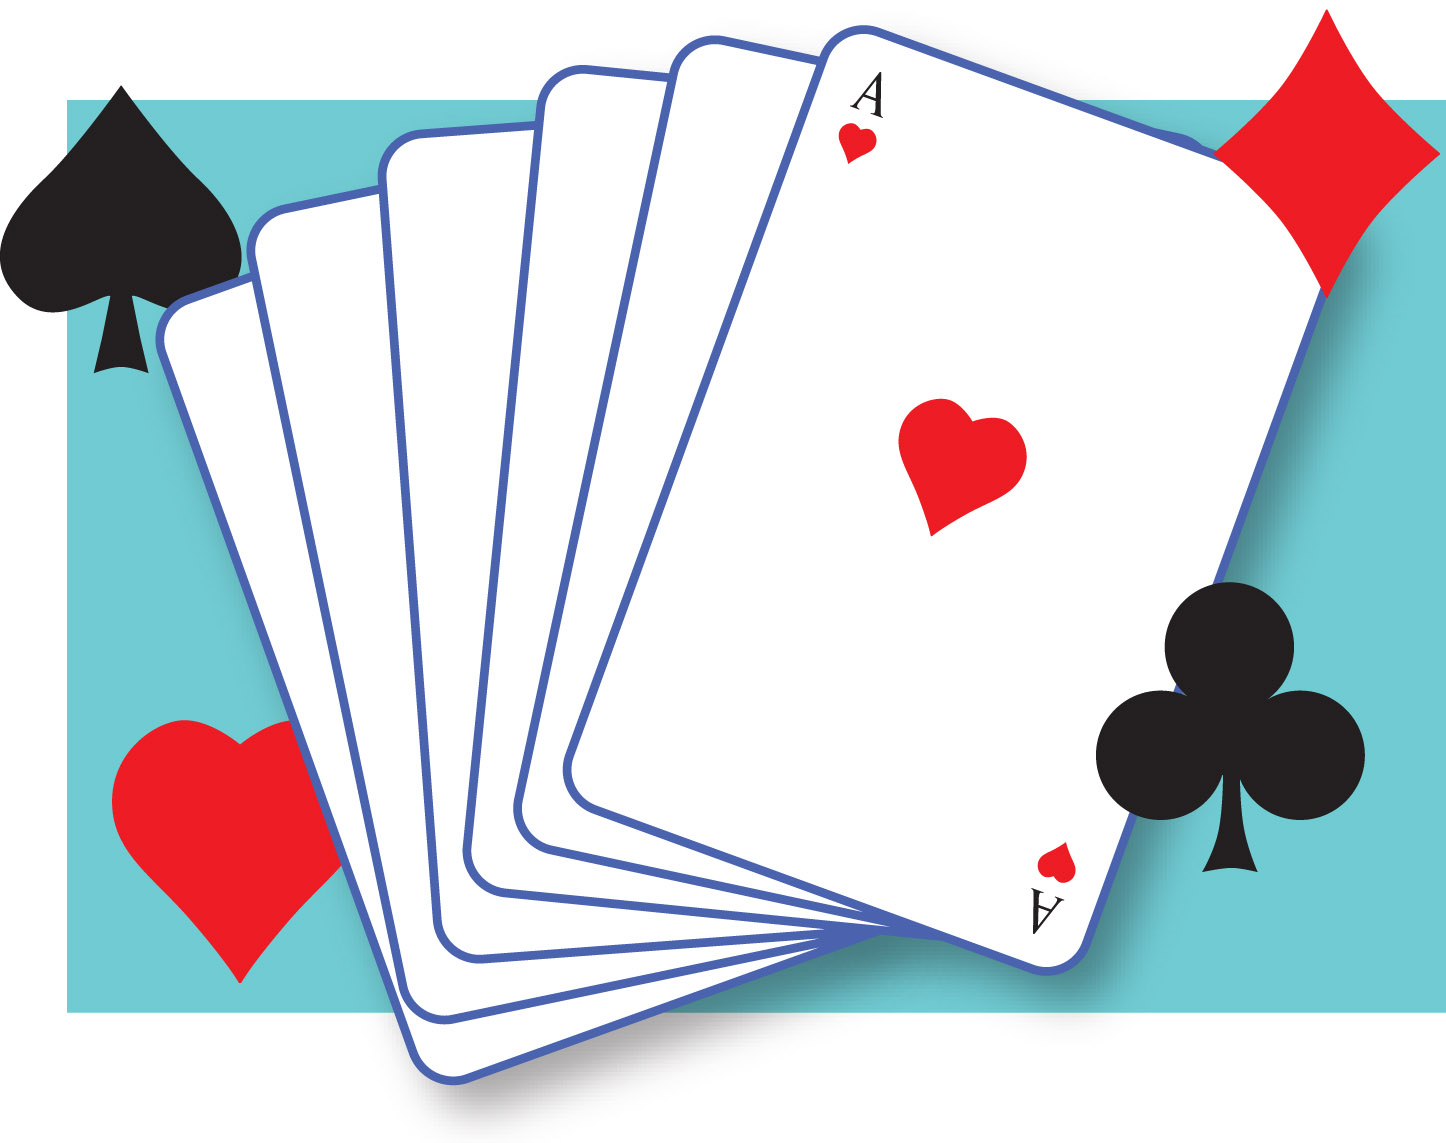 Duplicate Bridge Game Clip Art.